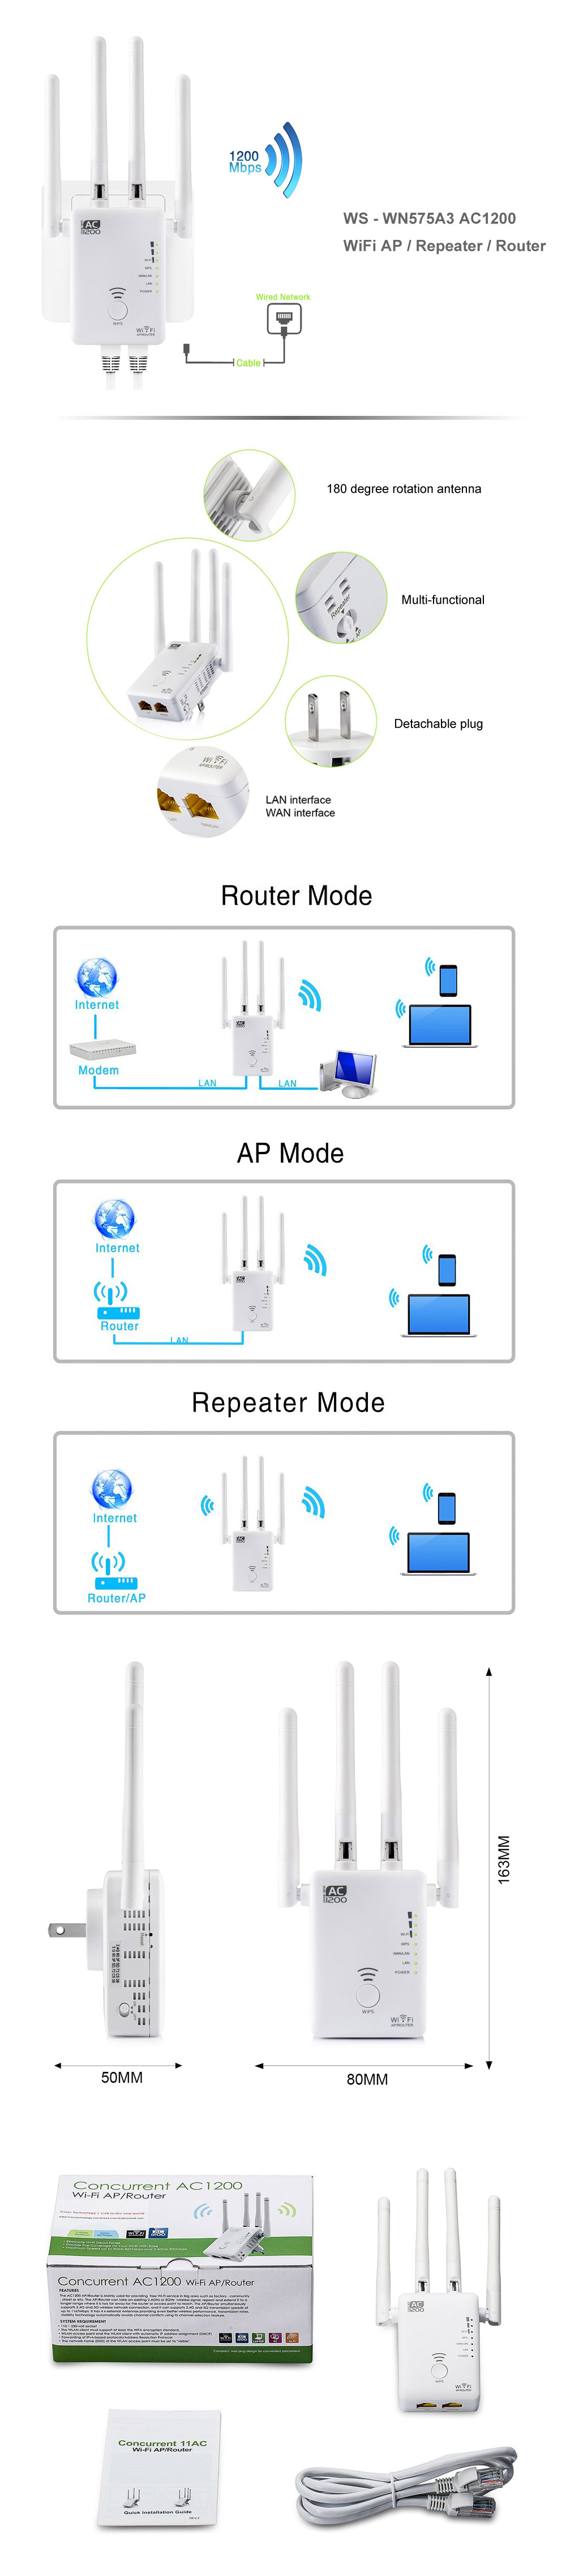 WS - WN575A3 AC1200 WiFi AP / Repeater / Router Wireless Network Device